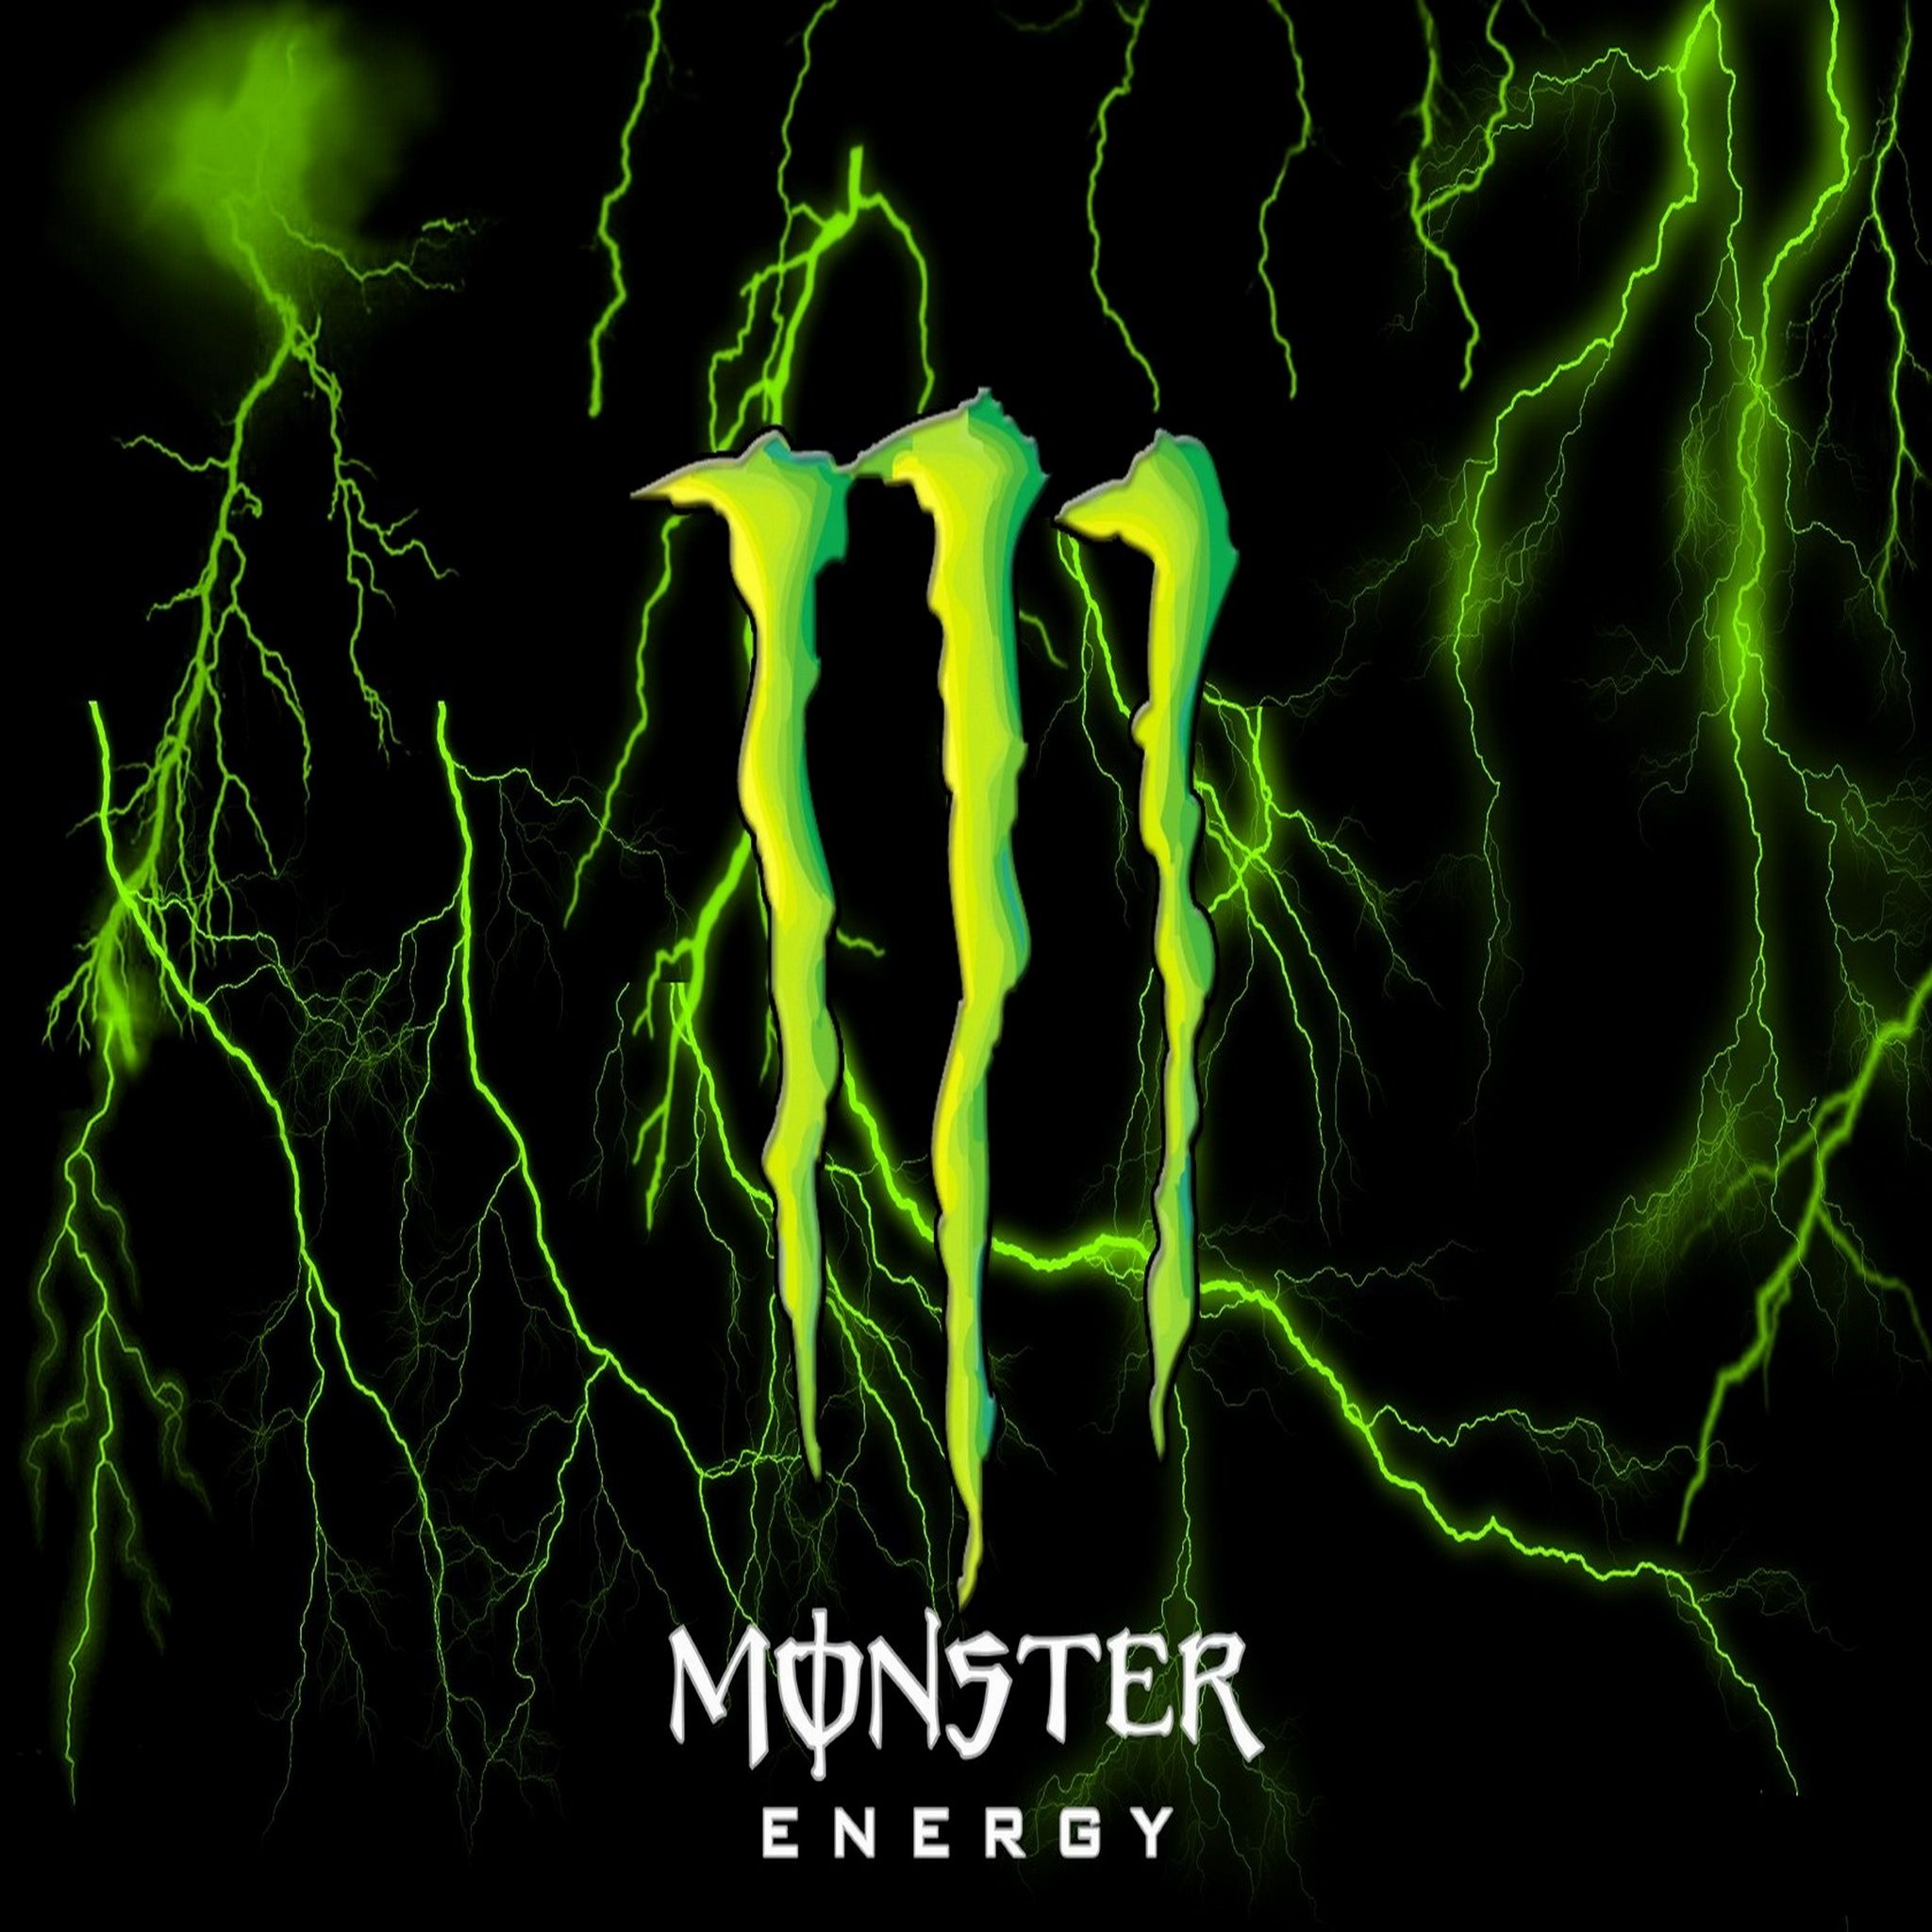 monster energy brochure Monster folio at monster energy i held many hats on various projects from design promotional pieces, fliers, powerpoint templates/assets and new sales tools/collateral, trade show graphics for domestic and international trade shows, maintained and design of marketing/product assets including: product renders/photographs datasheets, sales decks, brochures, banners and other supporting collateral.